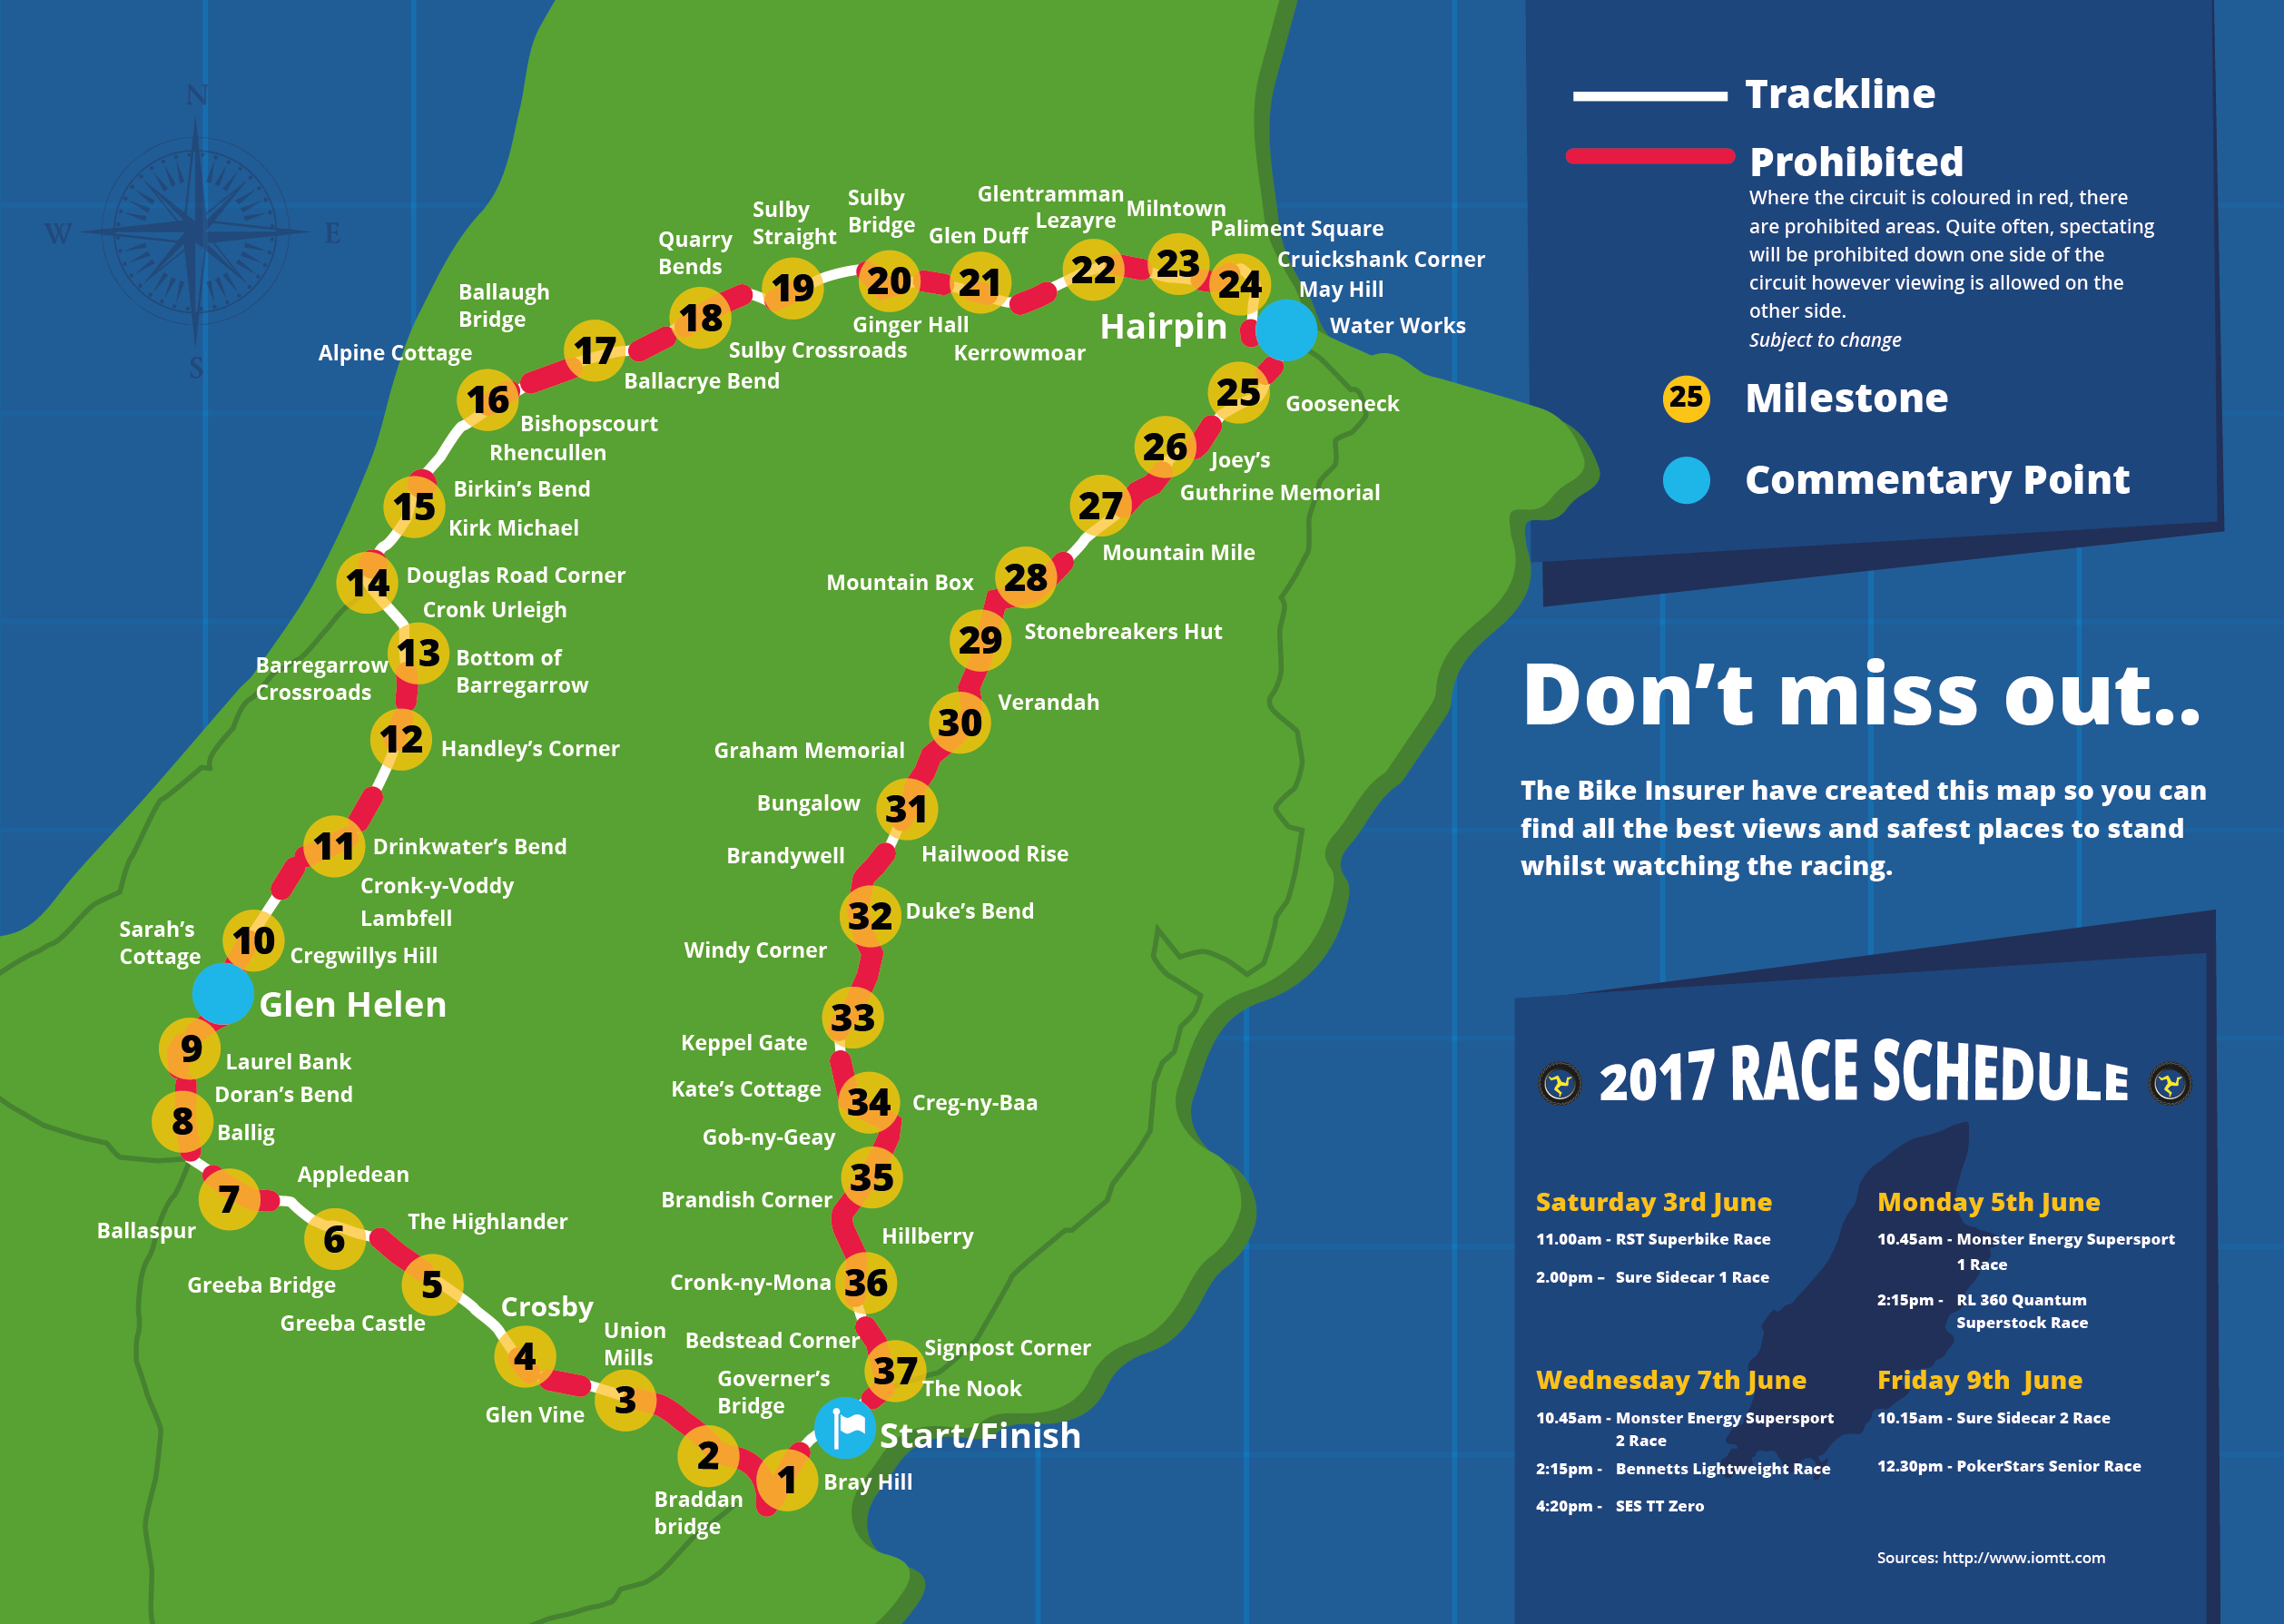 Isle-of-Man-TT-Circuit-Map-2017-the-bike-insurer